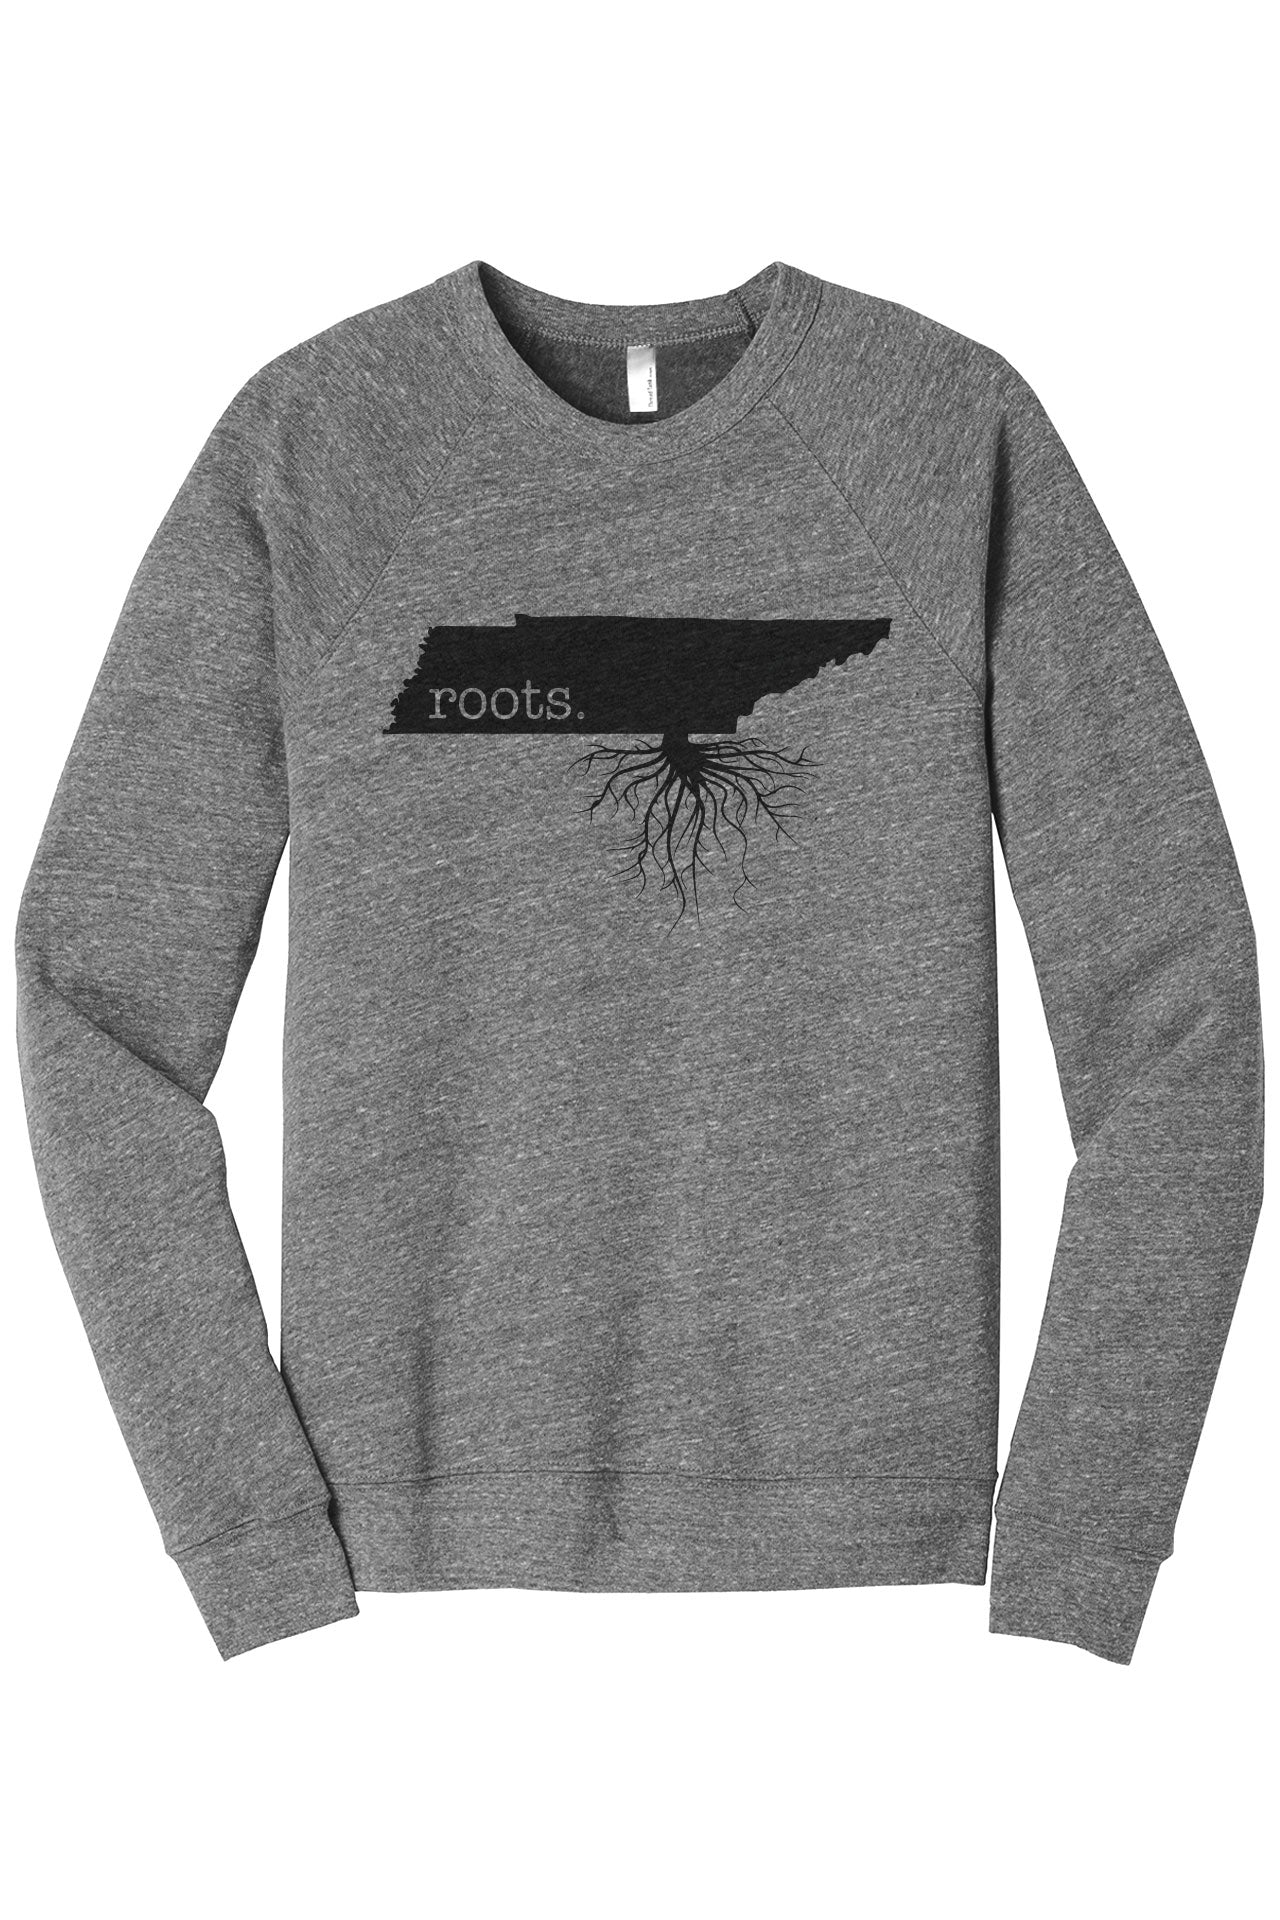 Home Roots State Tennessee TN Cozy Unisex Fleece Longsleeves Sweater Heather Grey FRONT